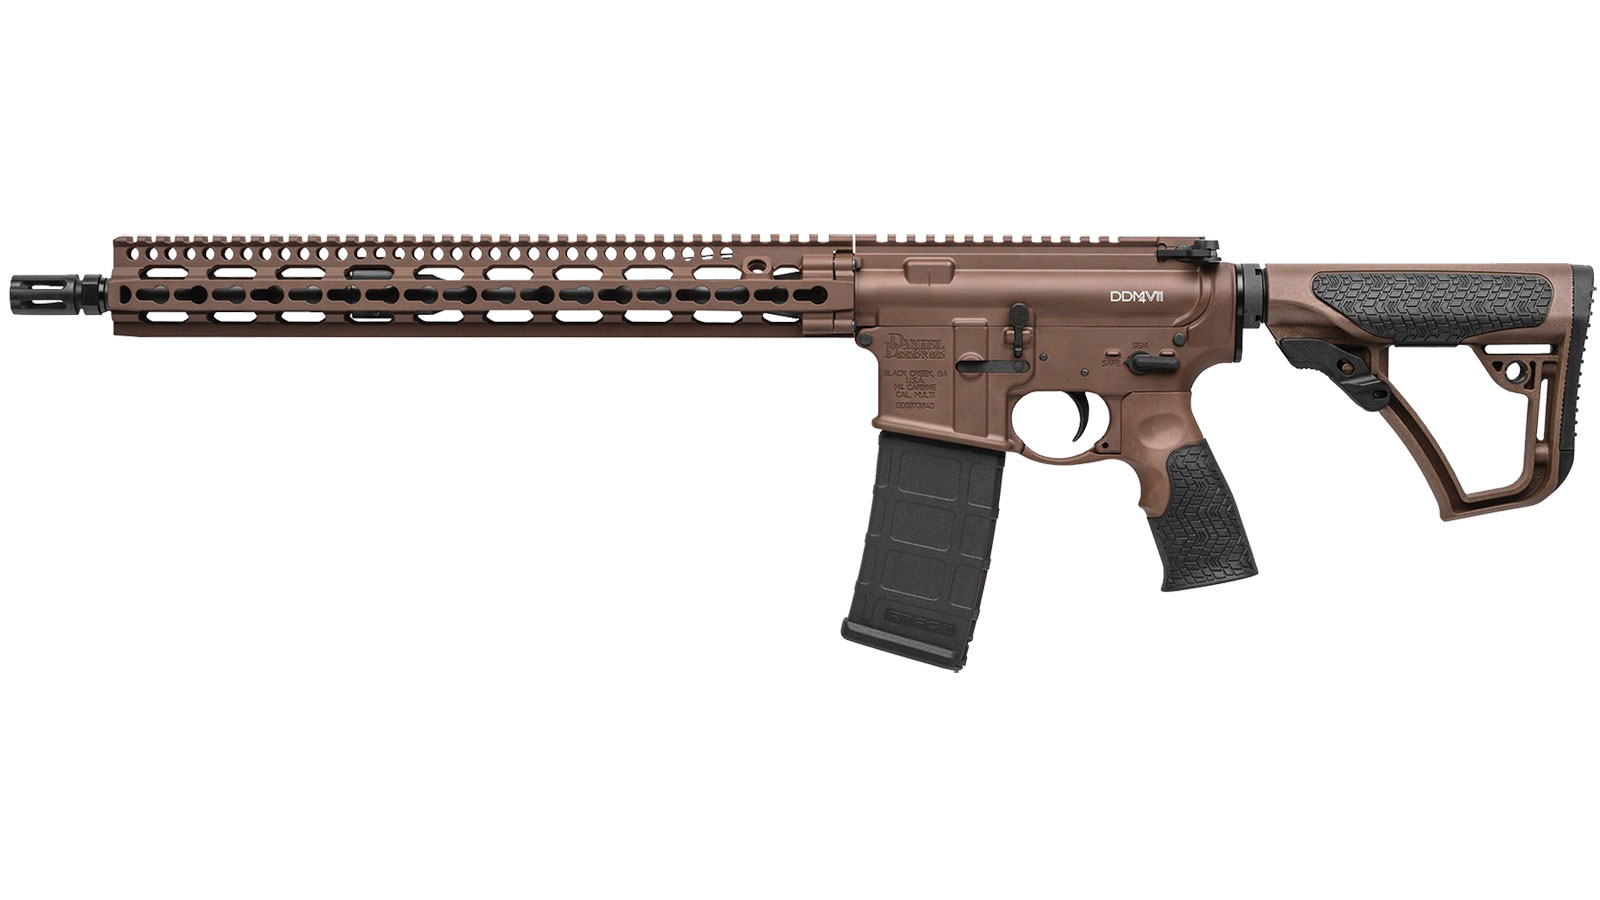 Daniel Defense 00257047 DDM4 V11 Semi-Automatic 223 Remington|5.56 NATO 16 30+1 6-Position Brown Stk Brown Cerakote|Black Phosphate in.